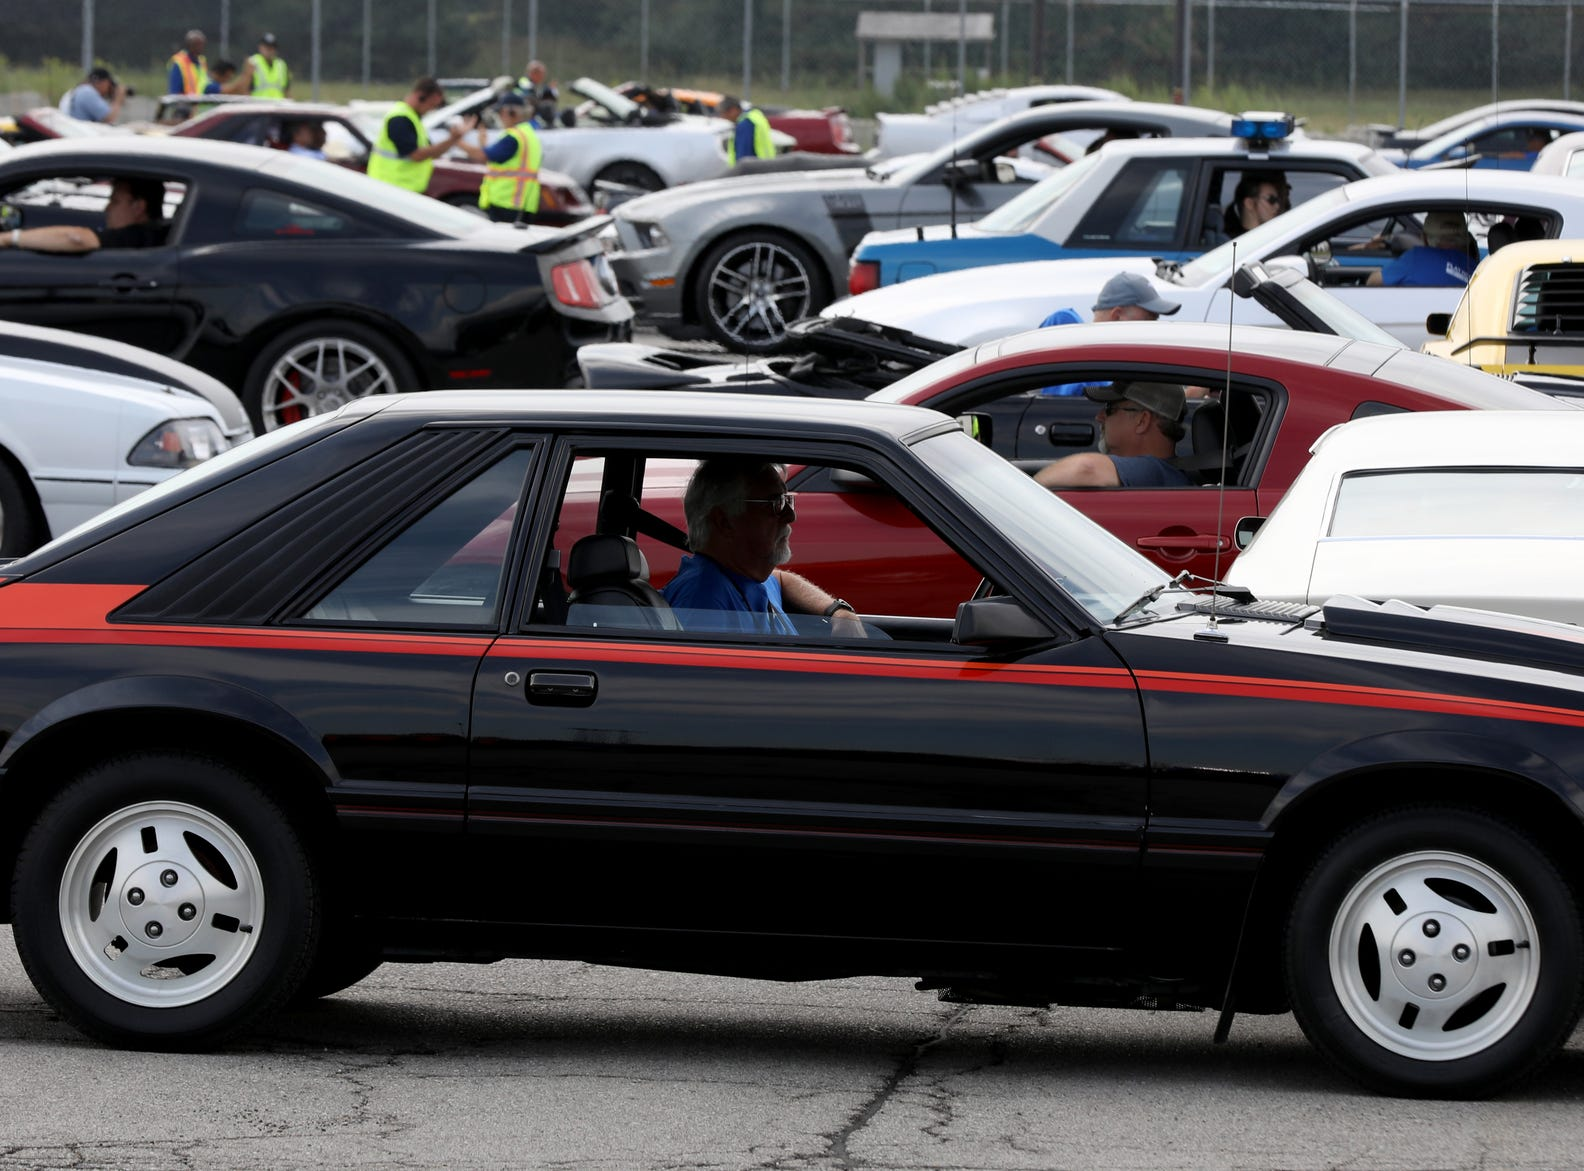 A 1980's Ford Mustang makes its way past other Mustangs during the celebration of the 10 millionth Mustang at the Ford Motor Company Flat Rock Assembly Plant in Flat Rock on Wednesday, August 8, 2018